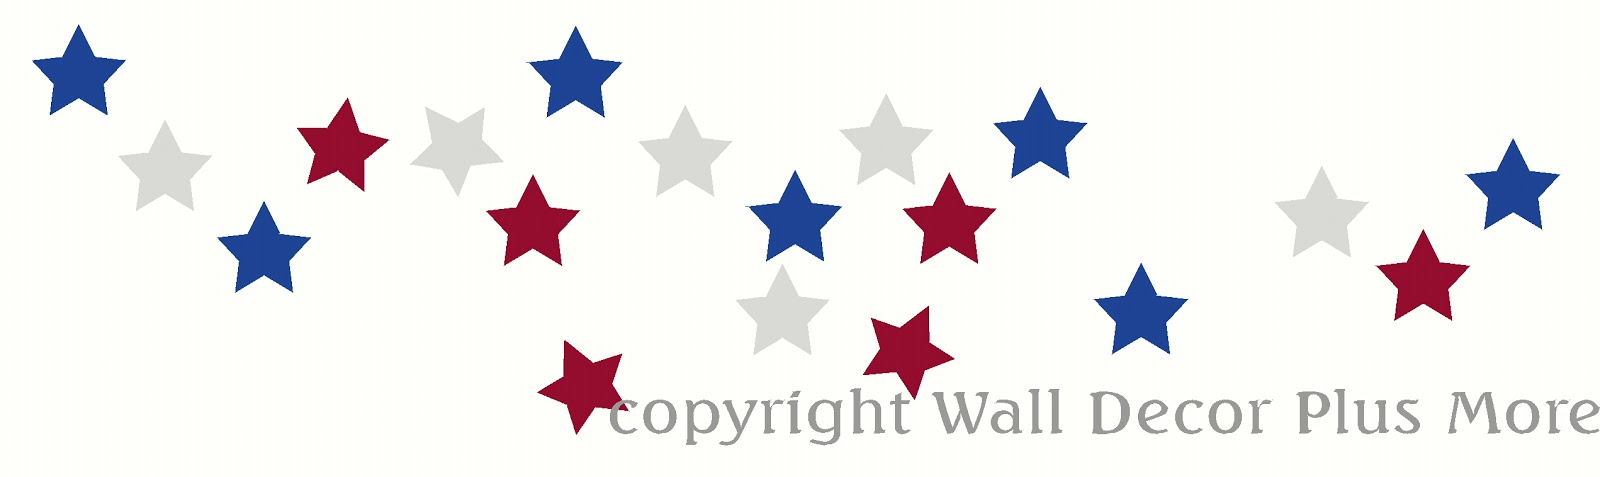 Wall Decor Plus More : Decorating with wall vinyl star stickers fun easy way